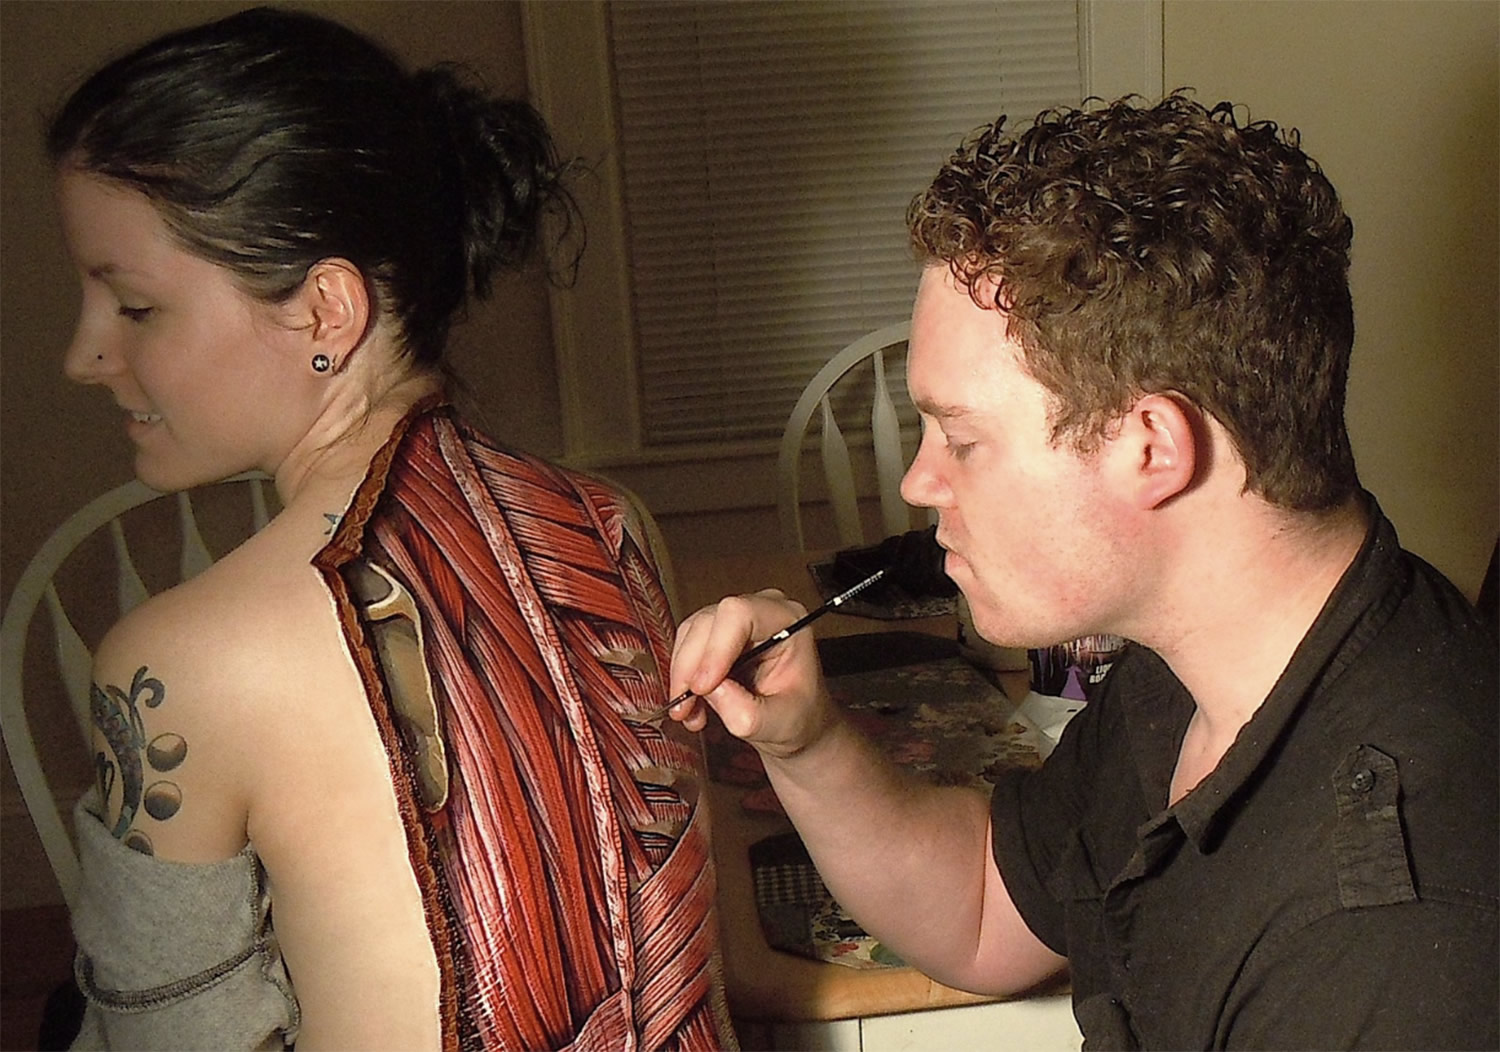 danny quirk painting on woman's back